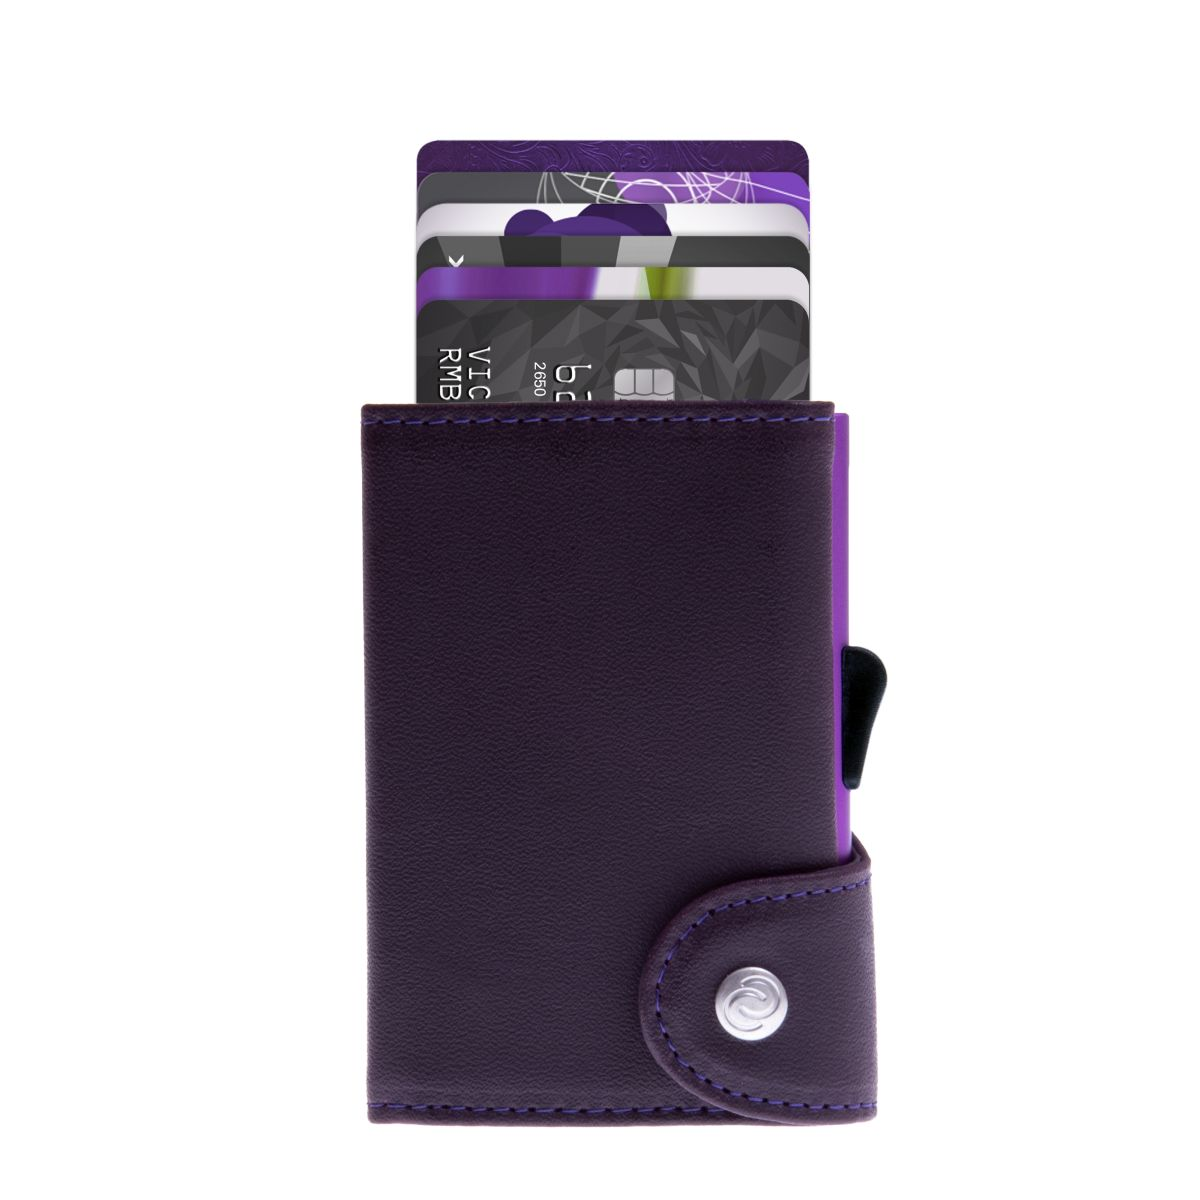 C-Secure Aluminum Card Holder with Genuine Leather - Purple